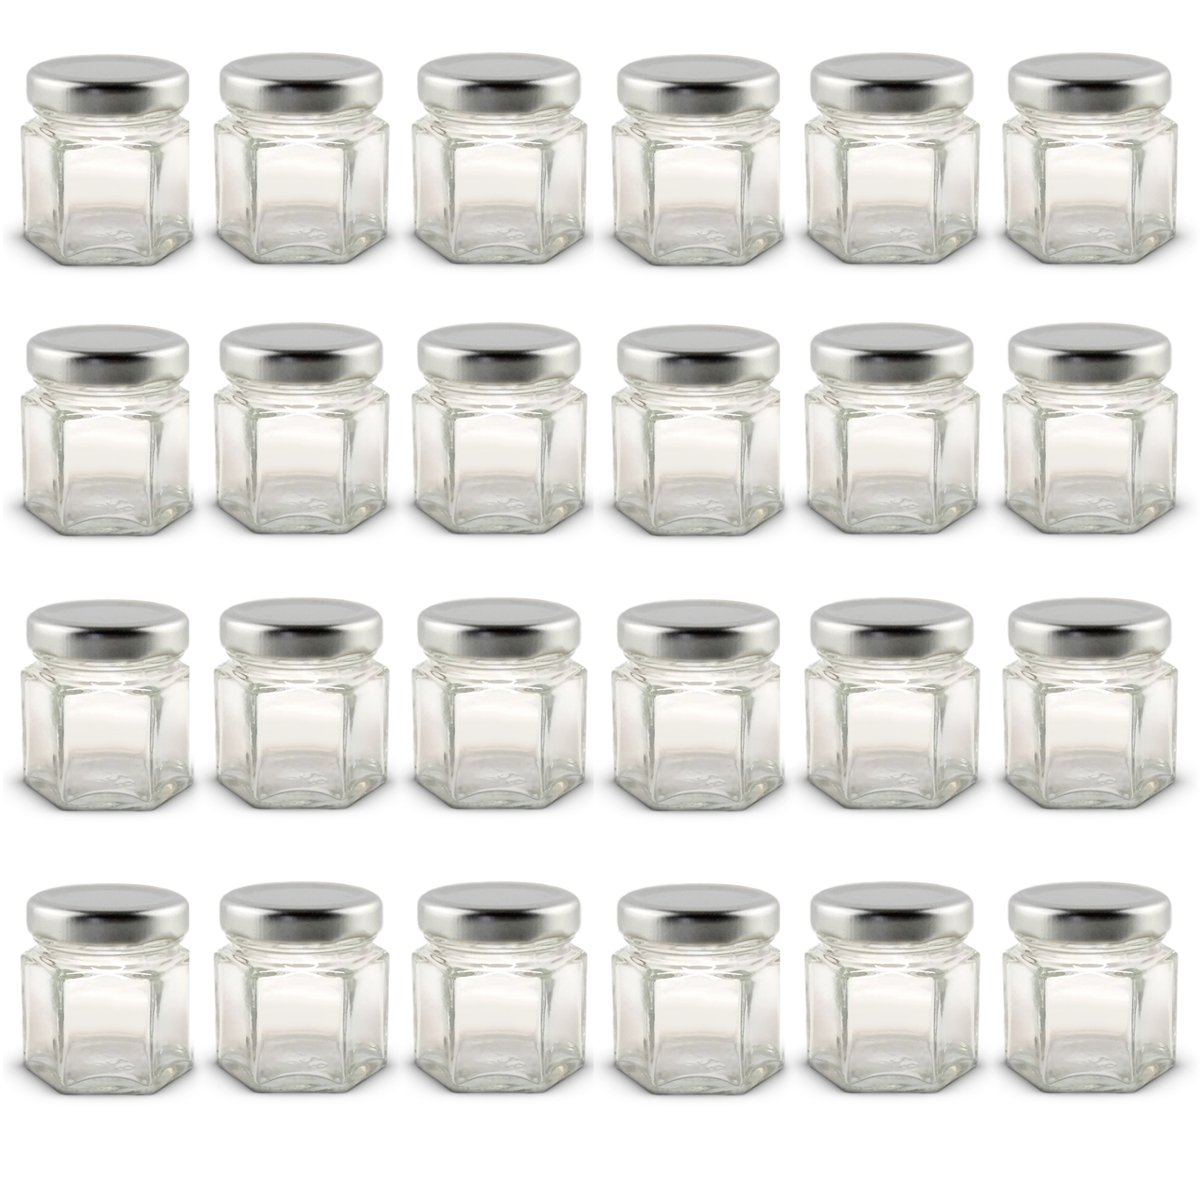 1.5 oz Hexagon Mini Glass Jars with Silver Lids and Labels (Pack of 24)